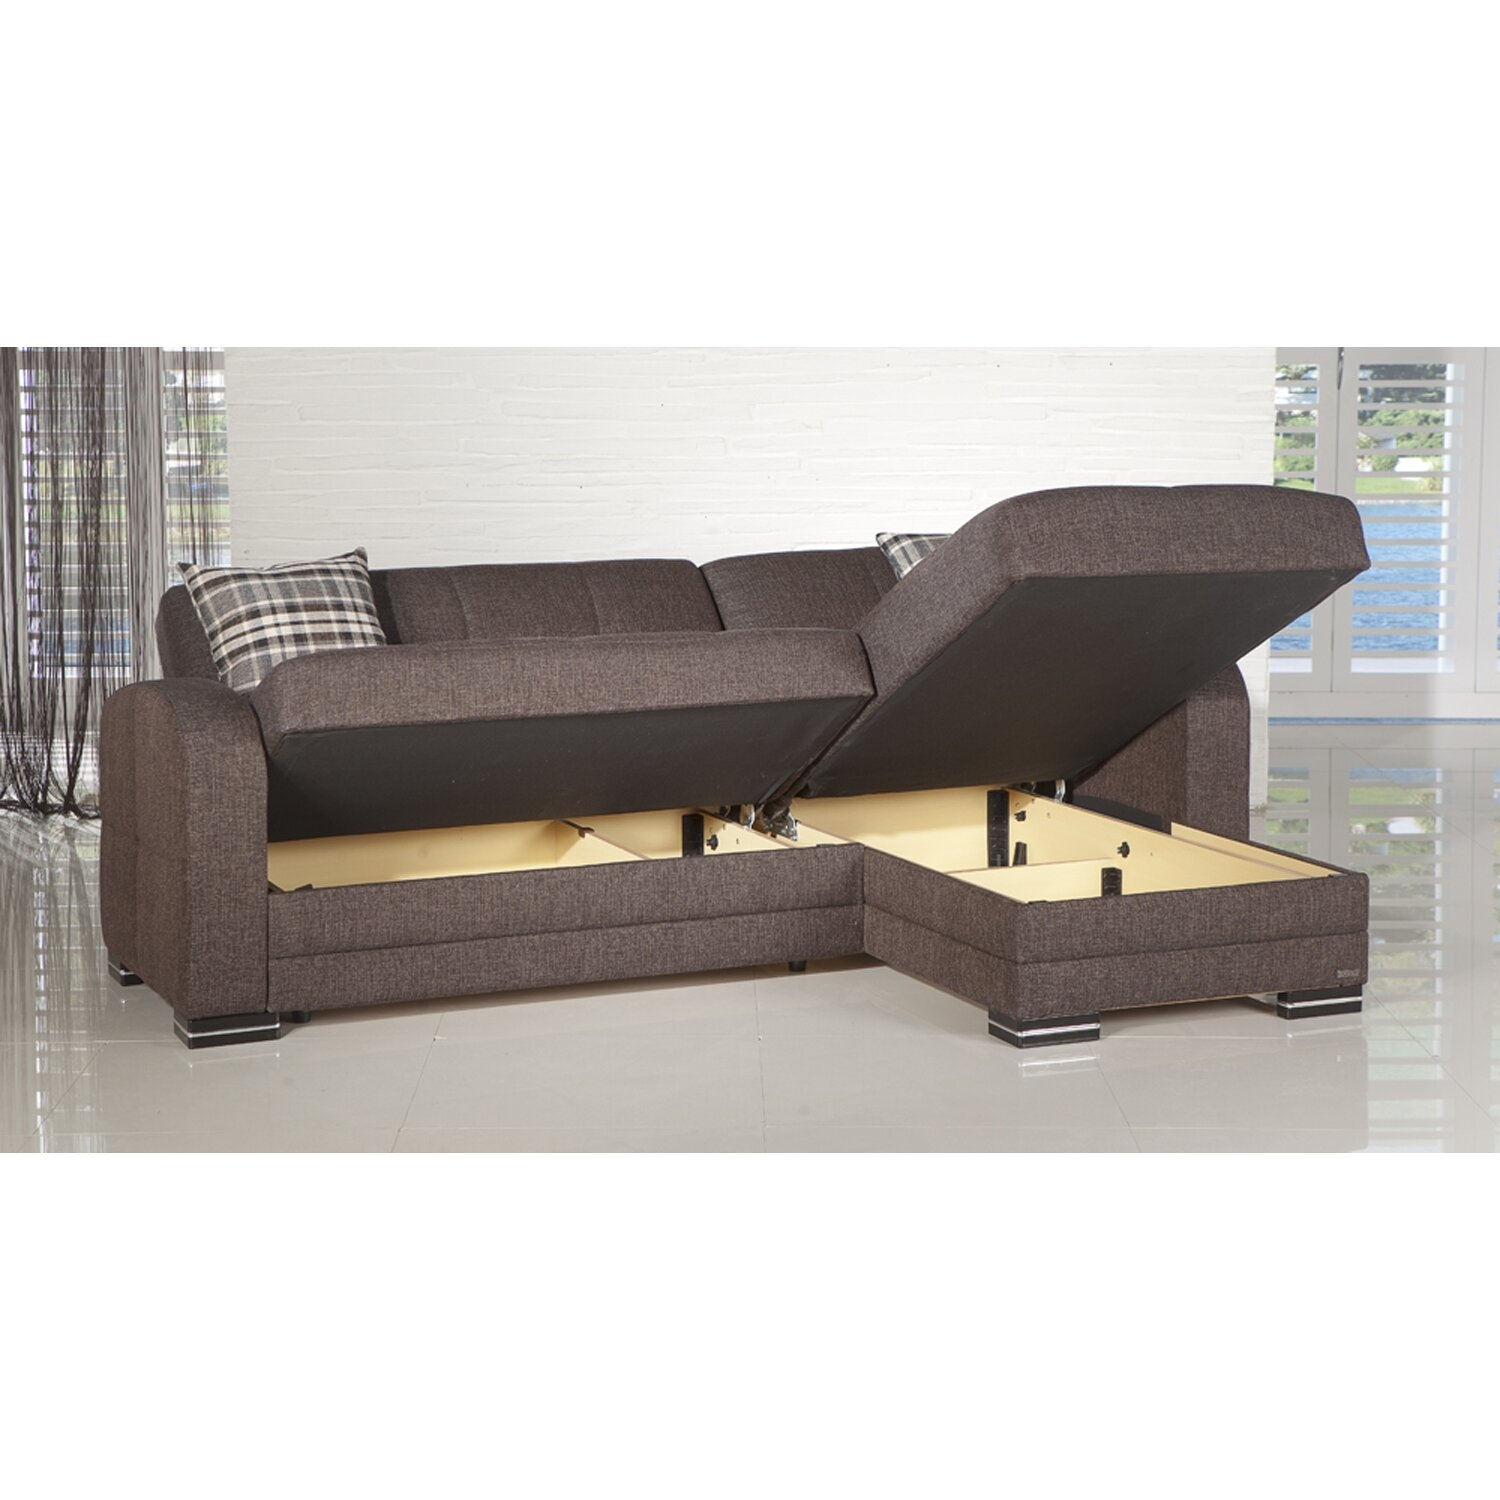 storage sectional sofa foter rh foter com storage sectional sofas for small spaces convertible sectional storage sofa bed